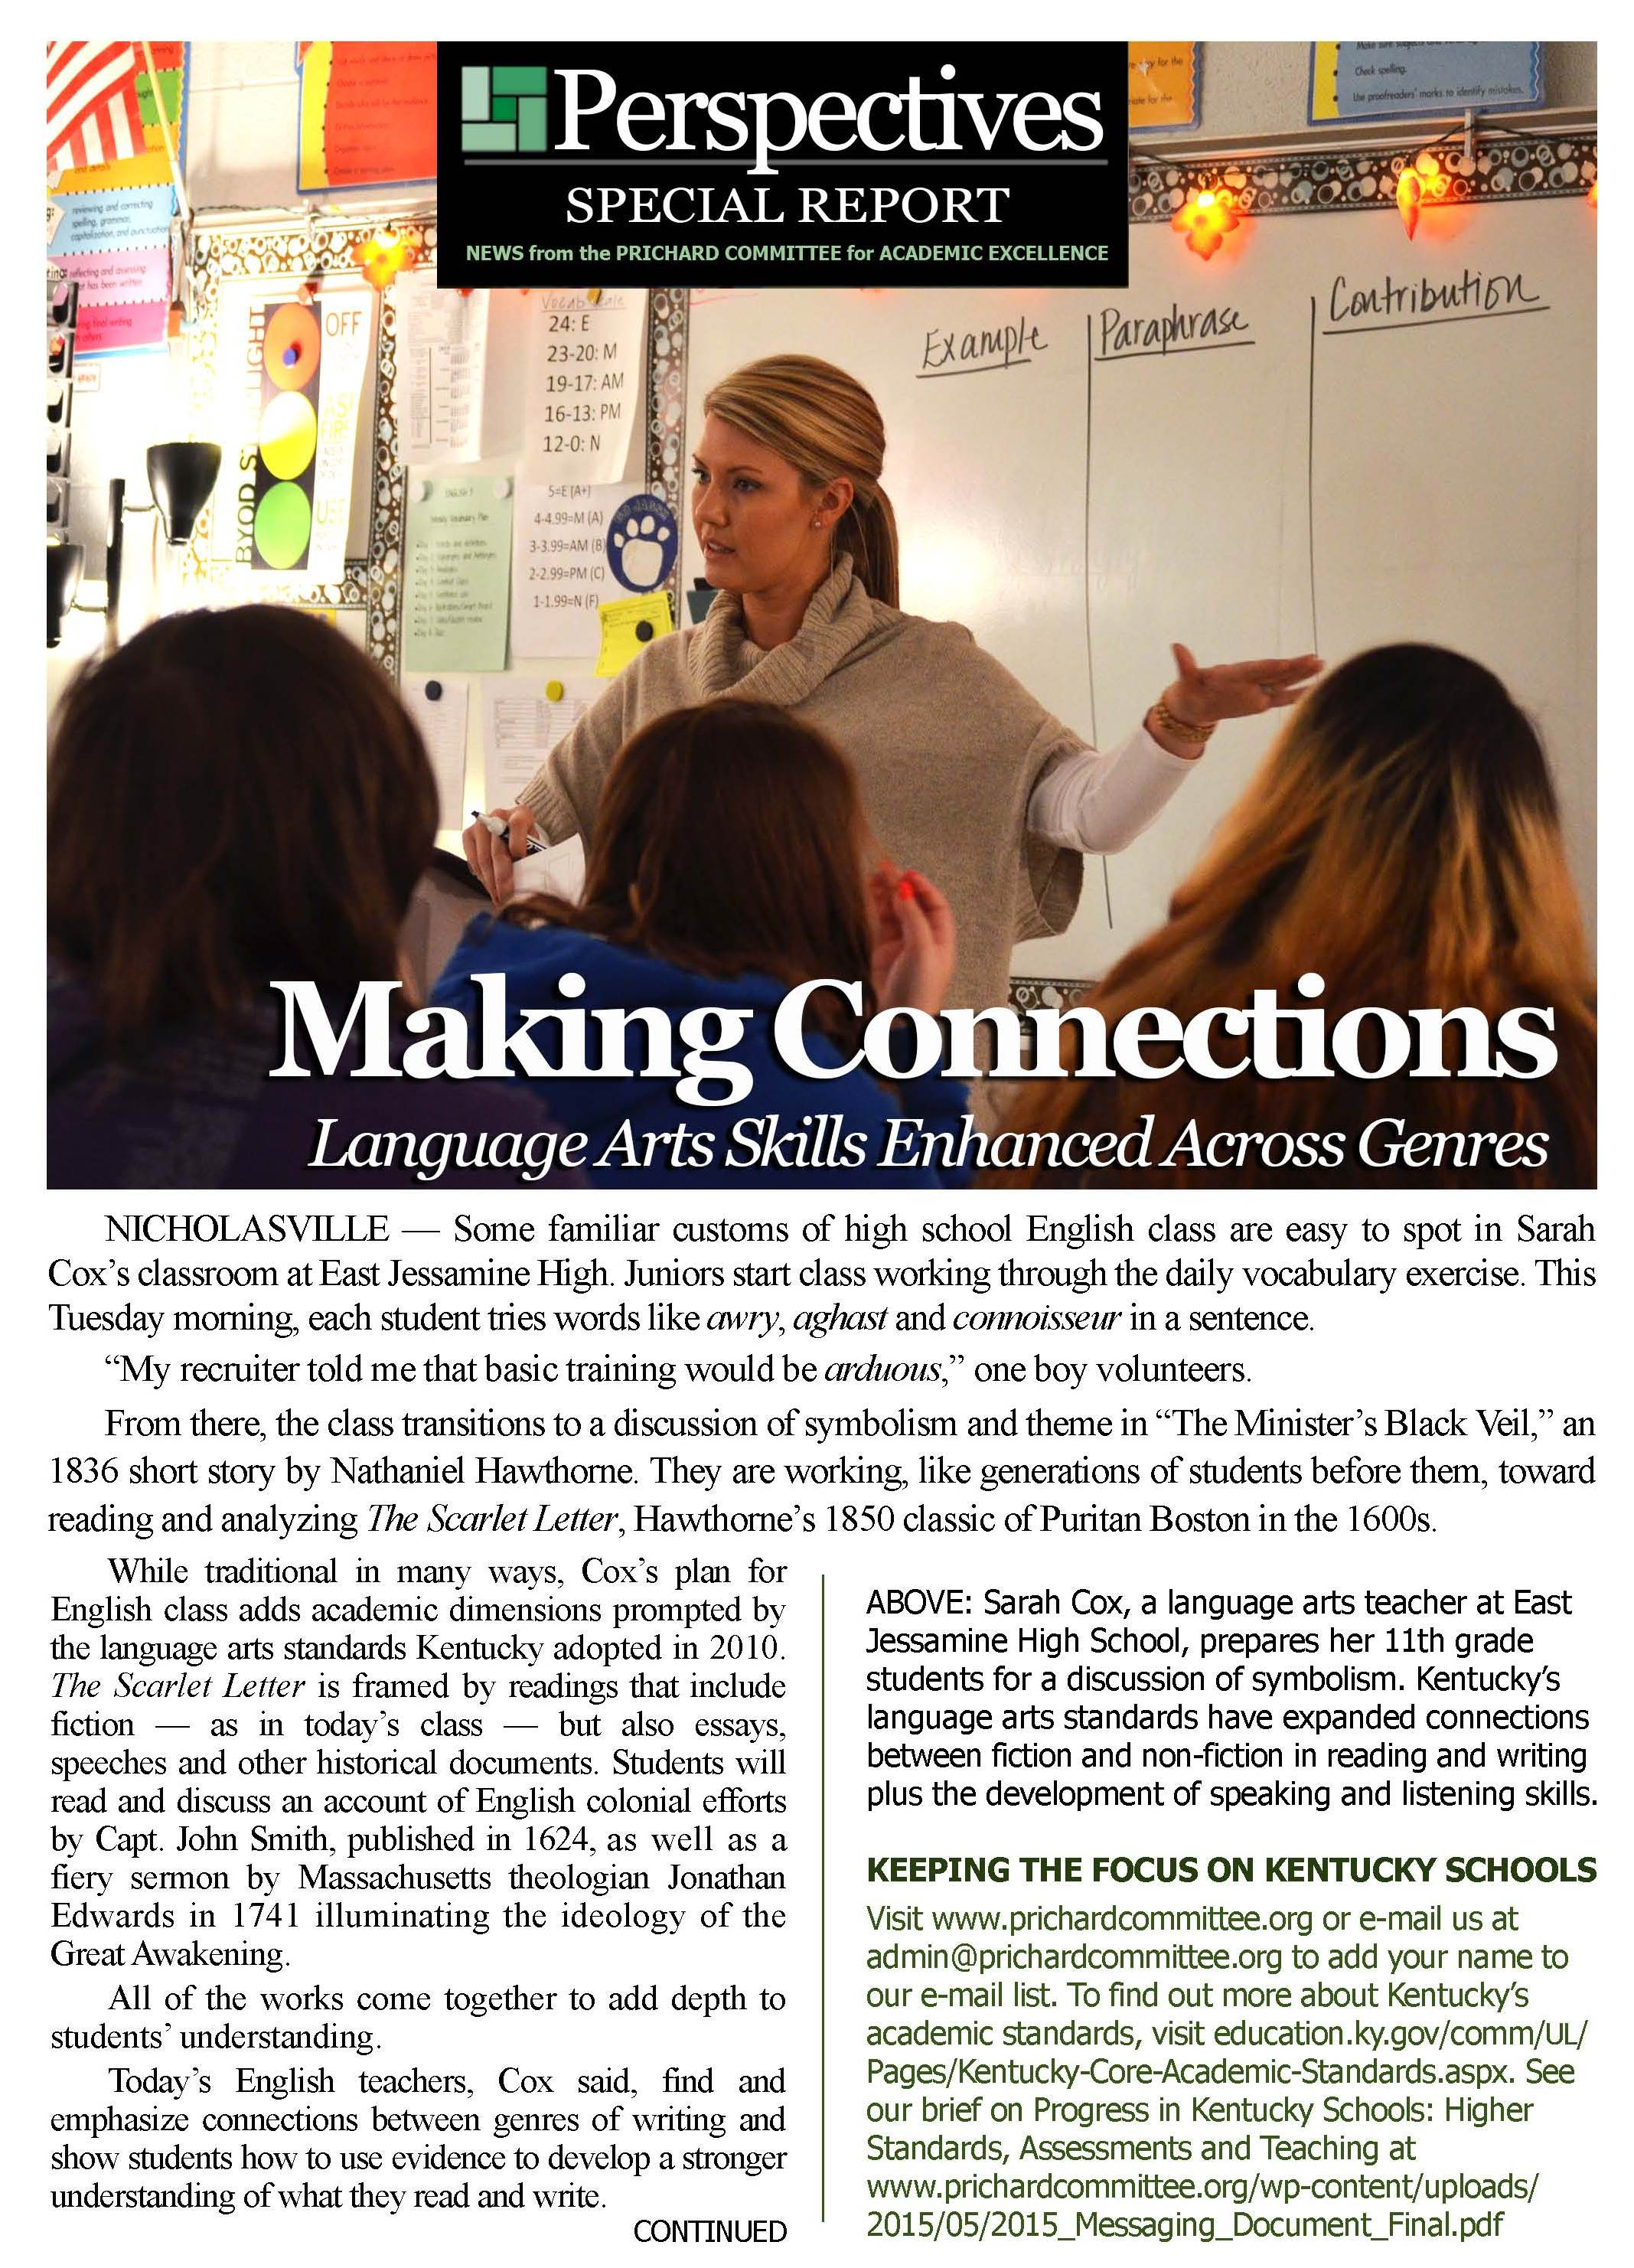 PERSPECTIVES SPECIAL REPORT | Making Connections: Language Art Skills Enhanced Across Genres